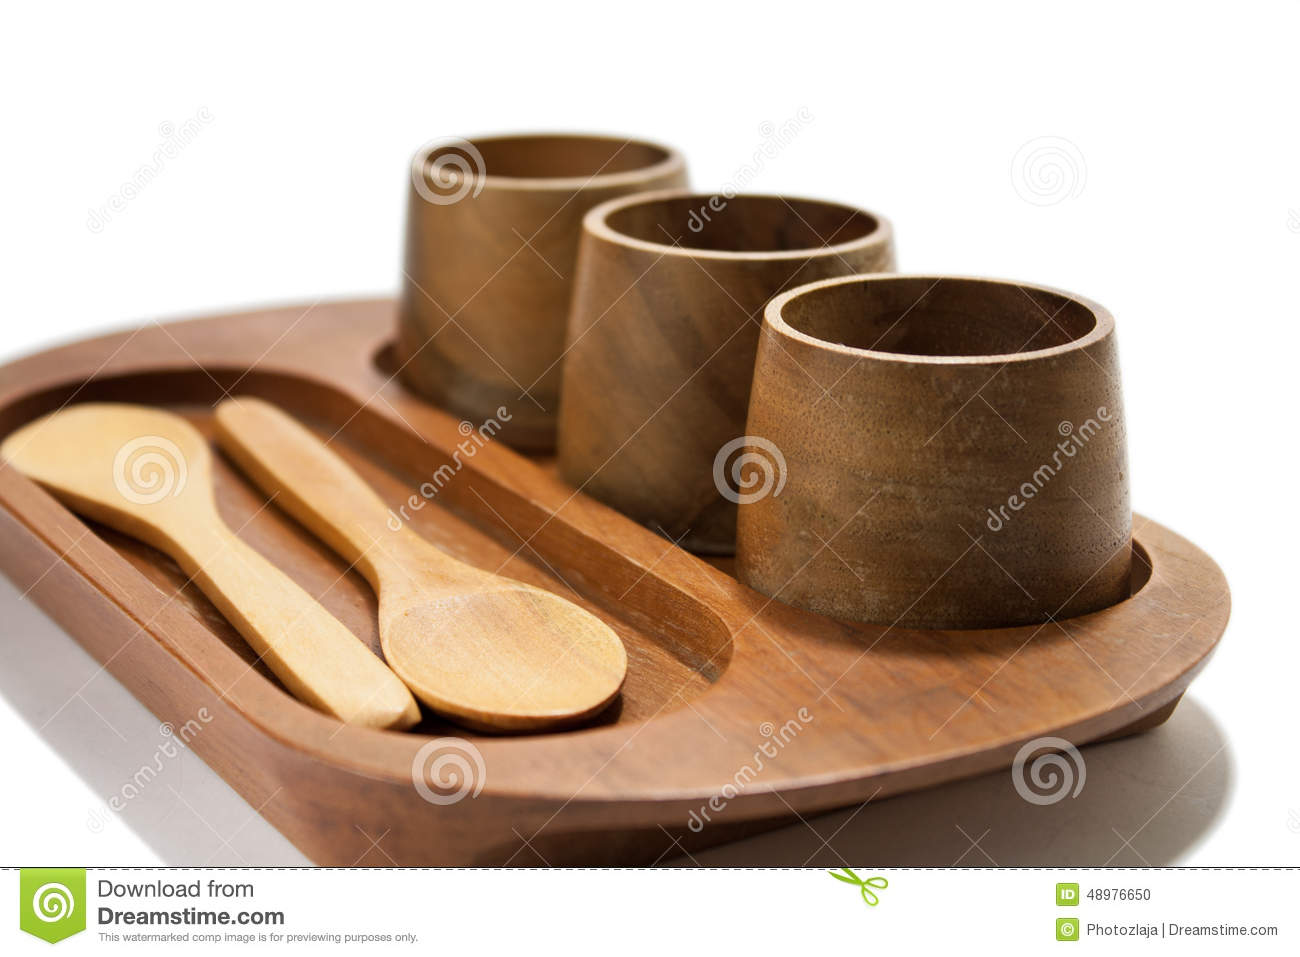 Wooden Drink Holder Wooden Cups And Spoons On The Wooden Holder Stock Photo